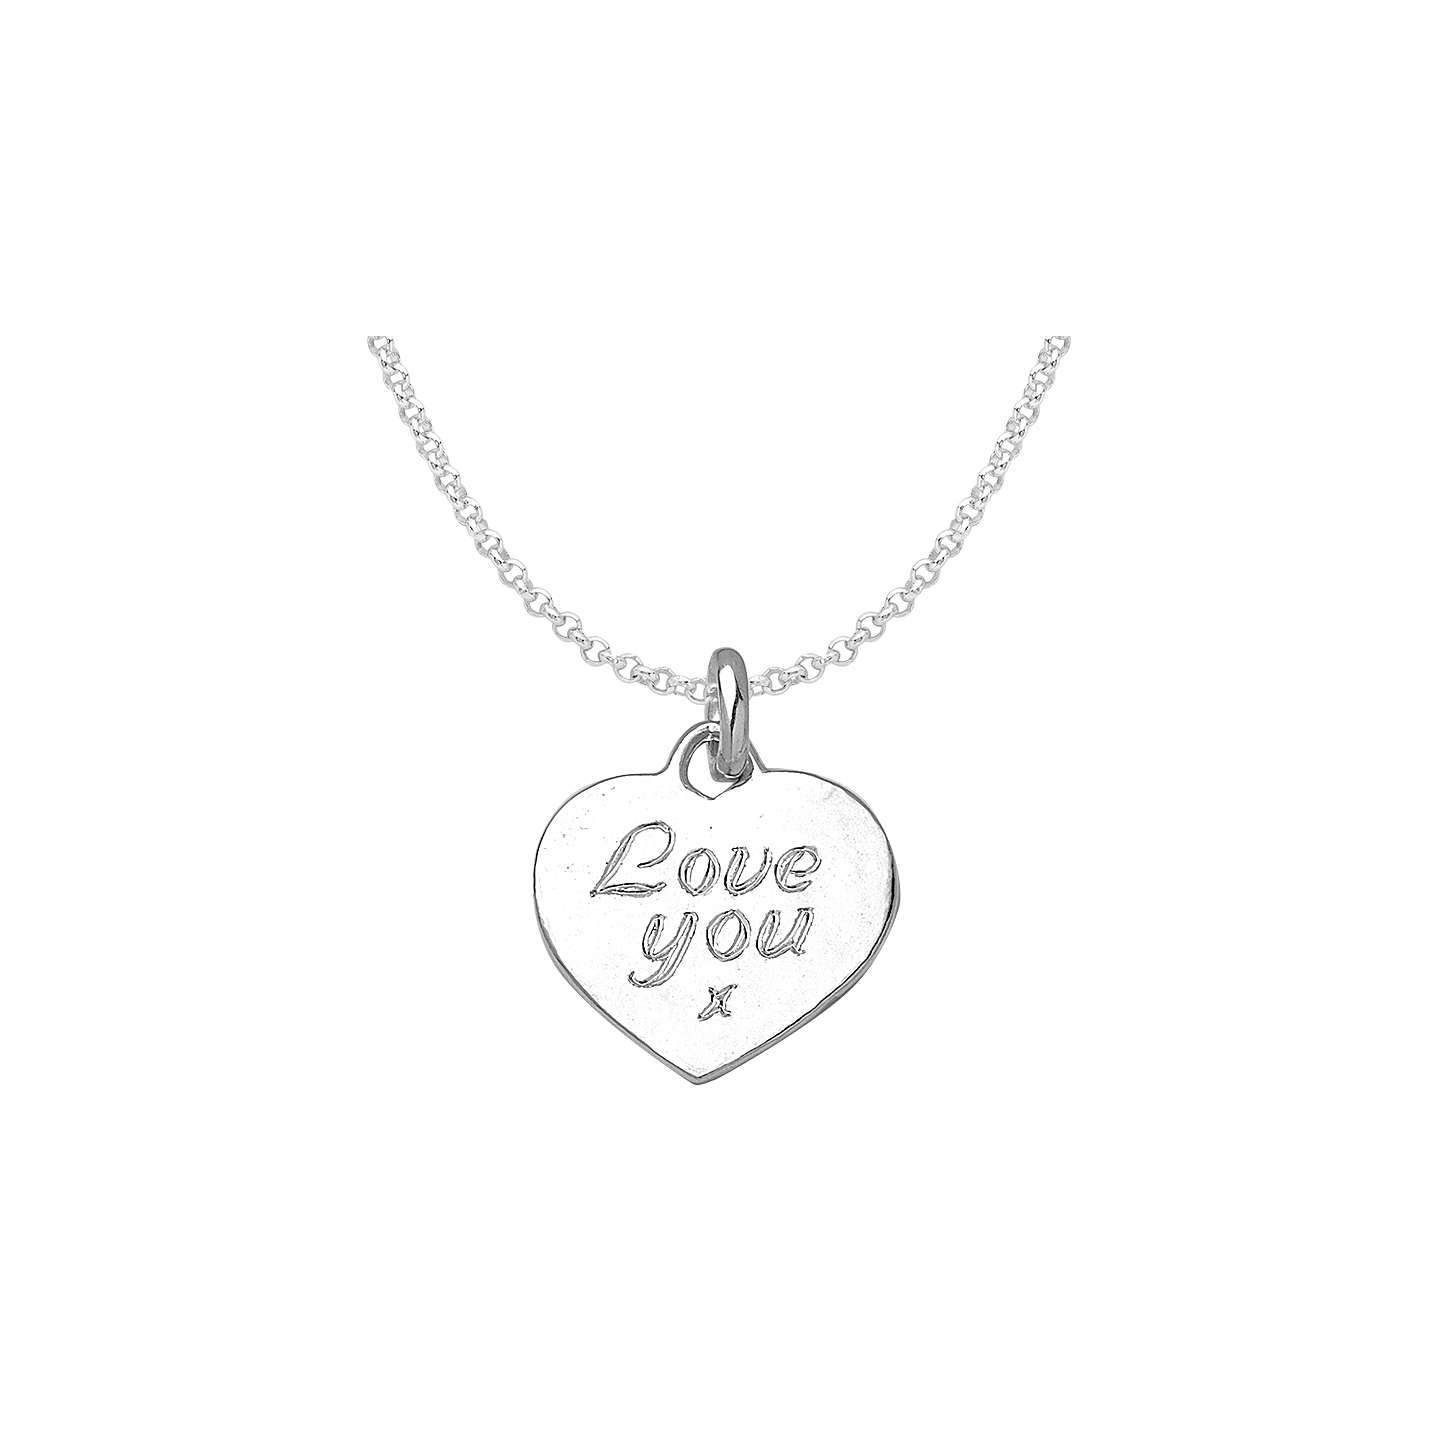 Dower hall engravable large heart pendant necklace at john lewis buydower hall engravable large heart pendant necklace silver online at johnlewis mozeypictures Gallery